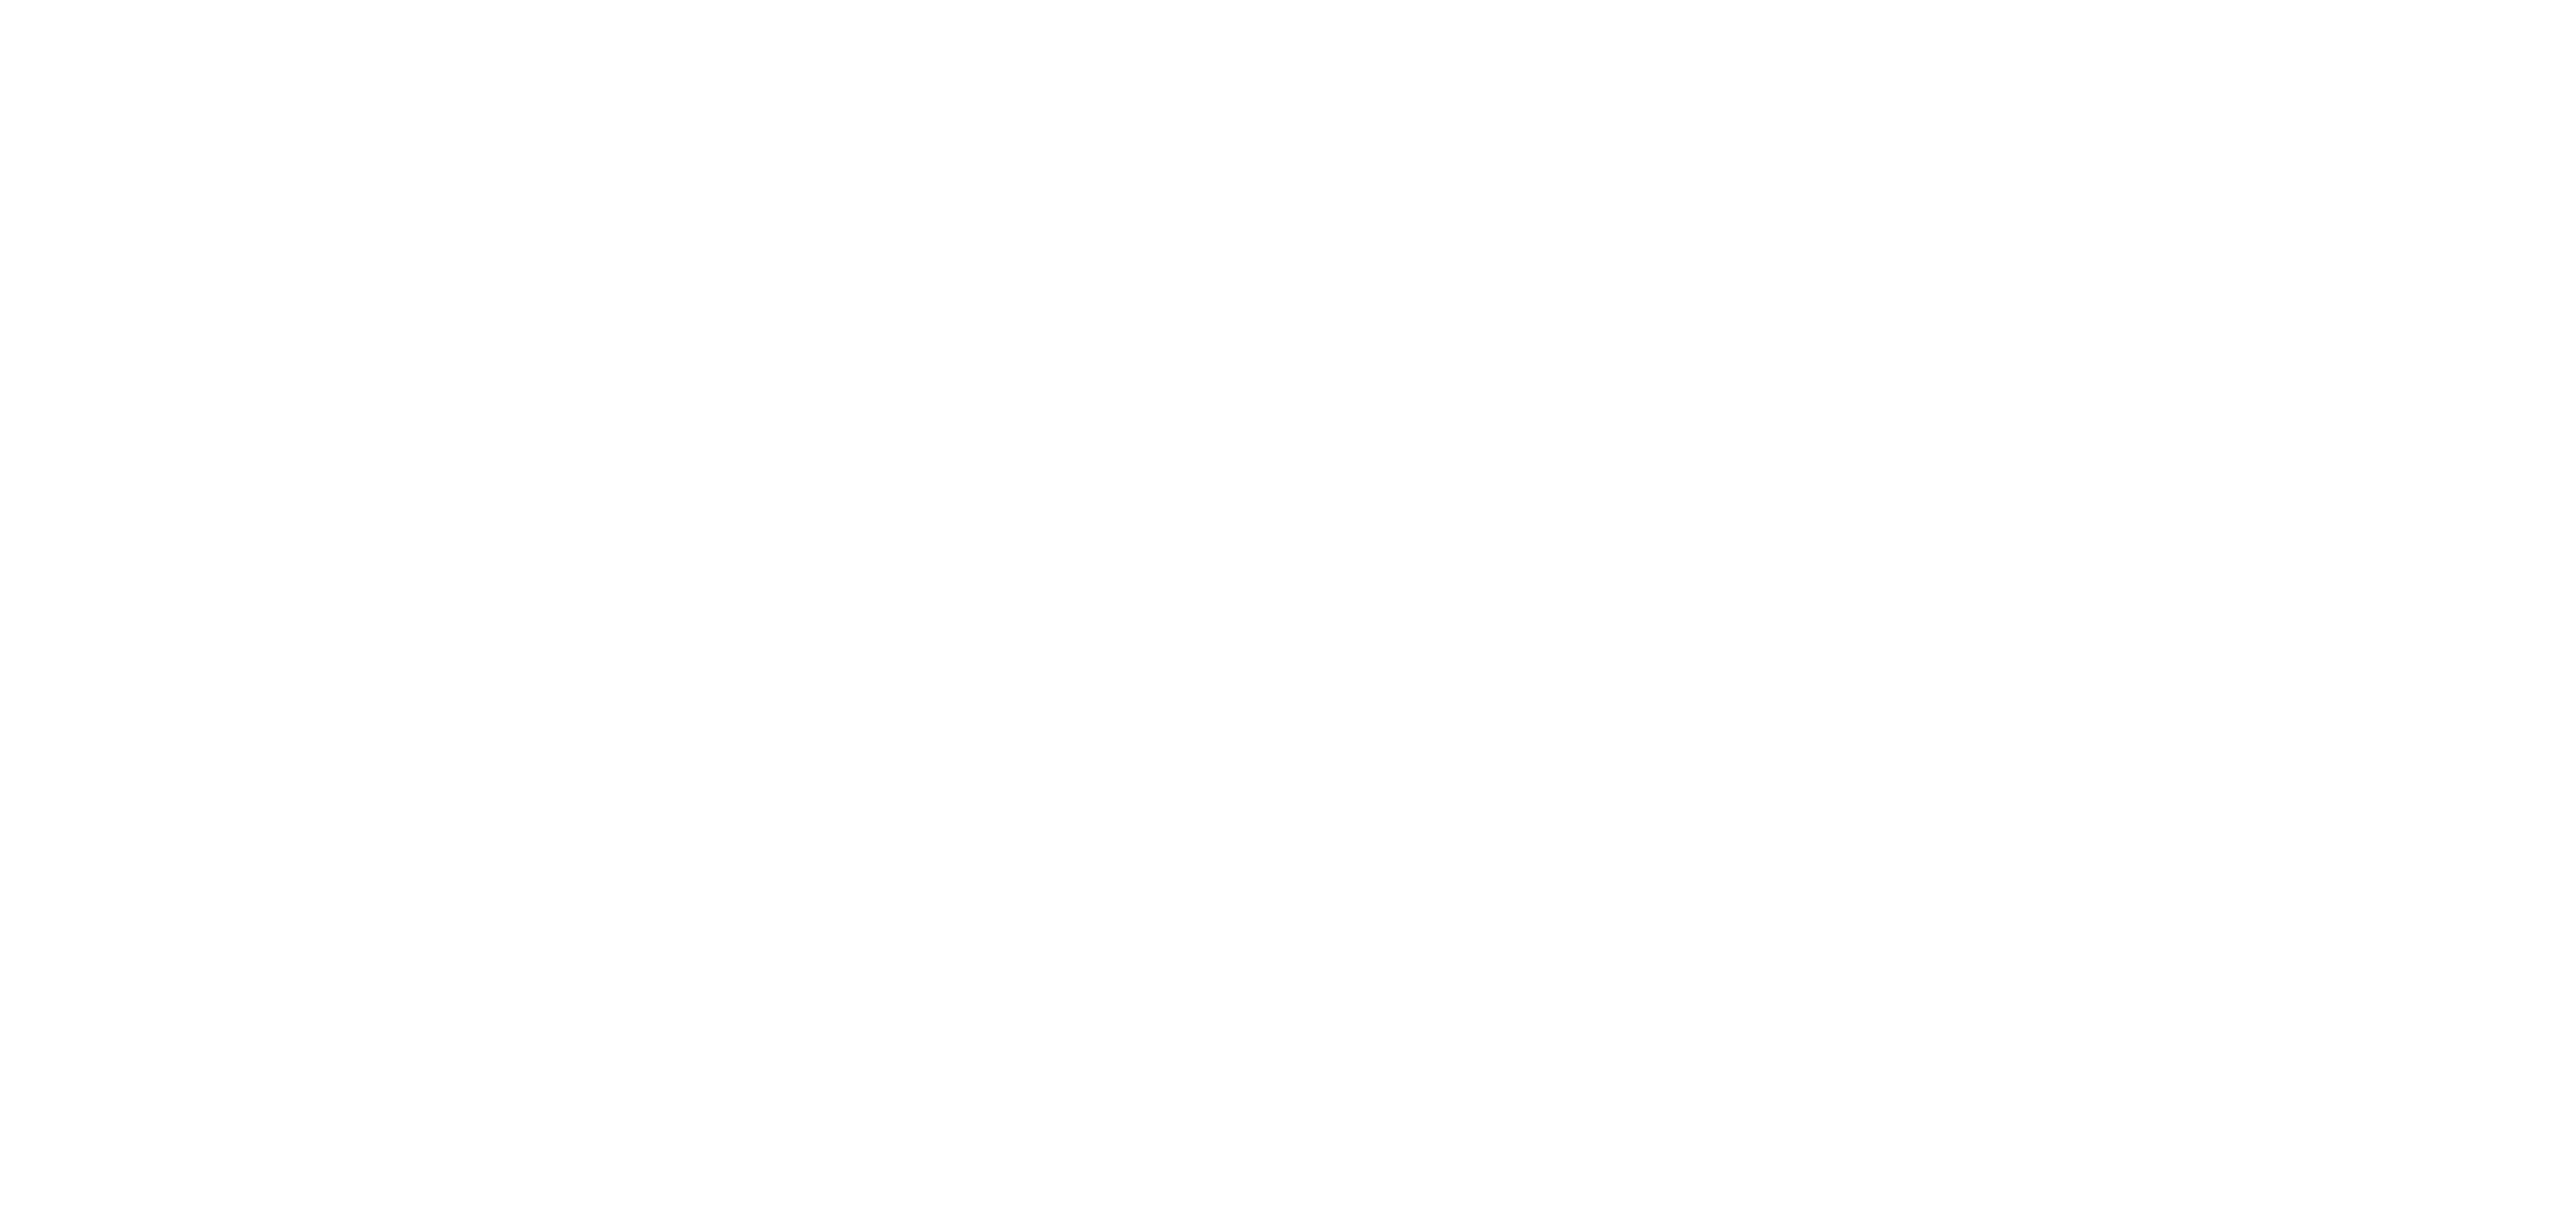 DEADLAKE APPAREL (Logo weiß)